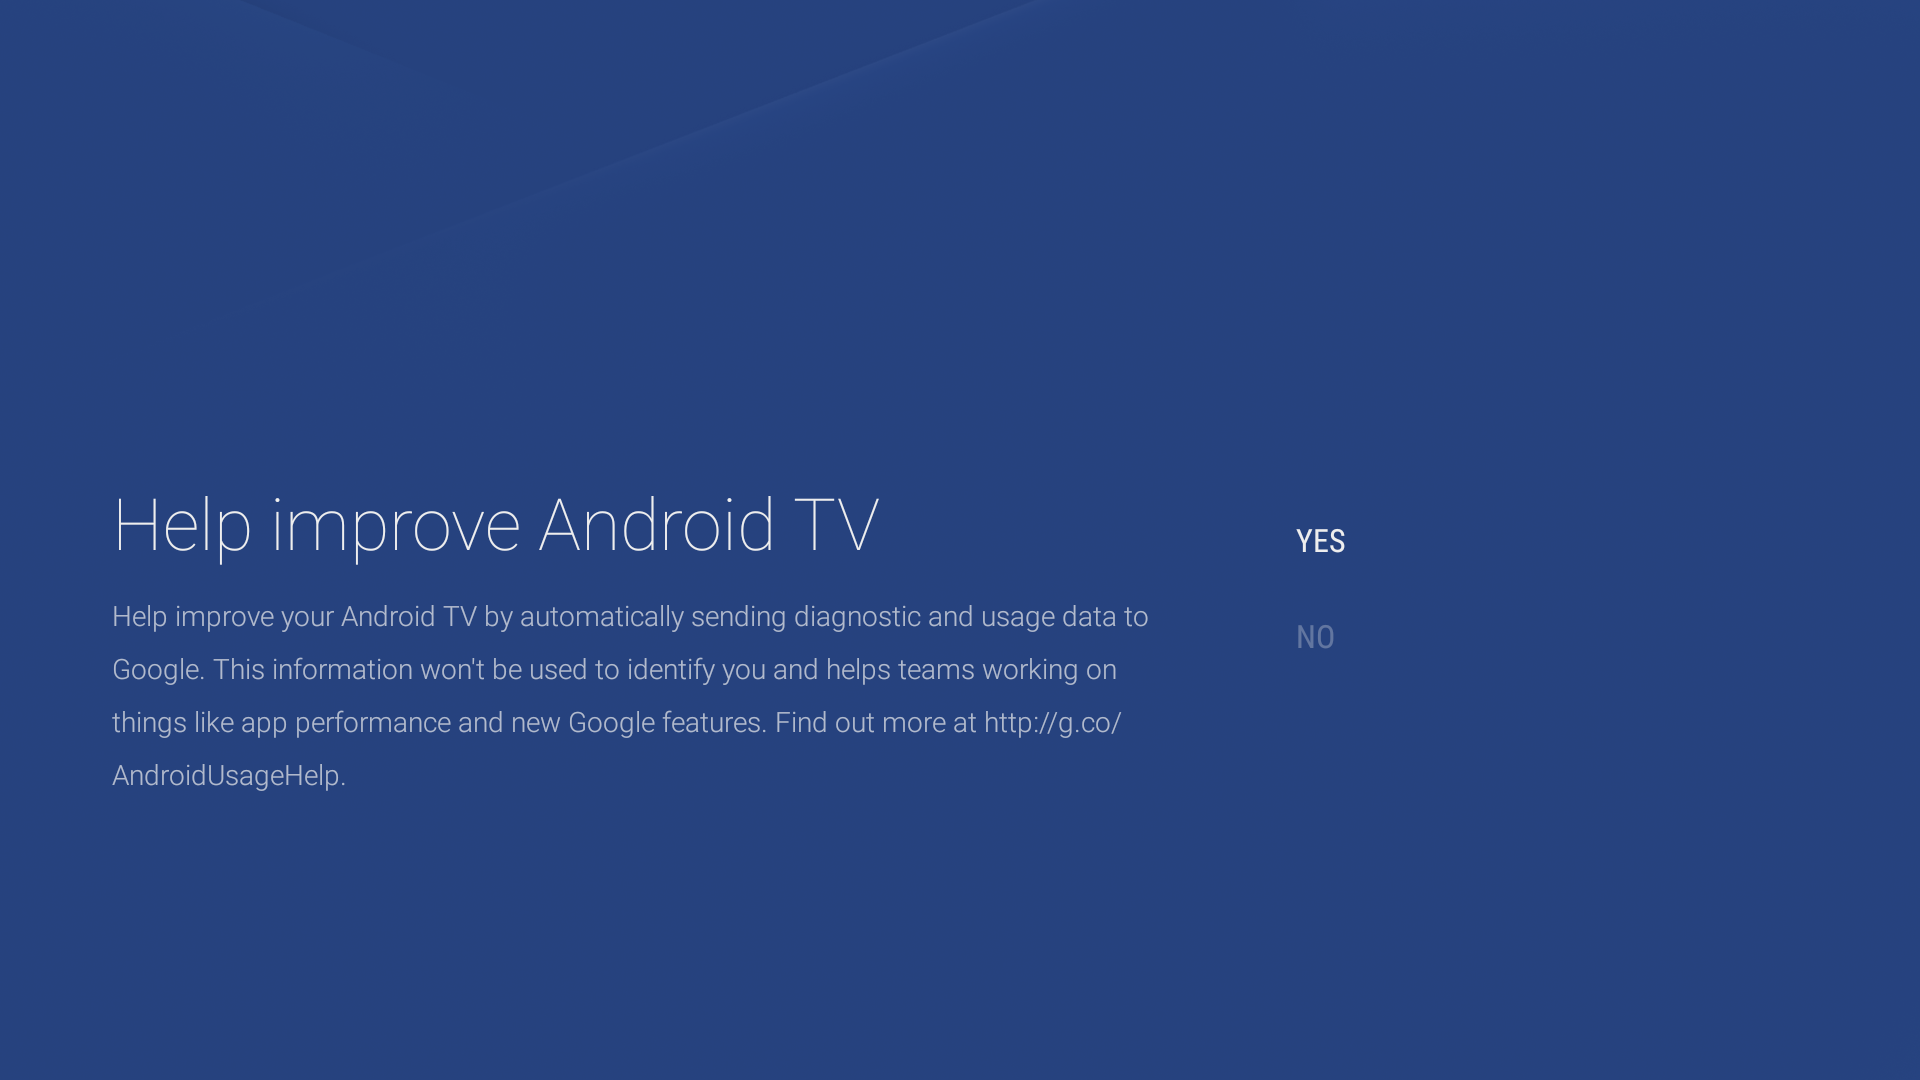 Improve Android TV